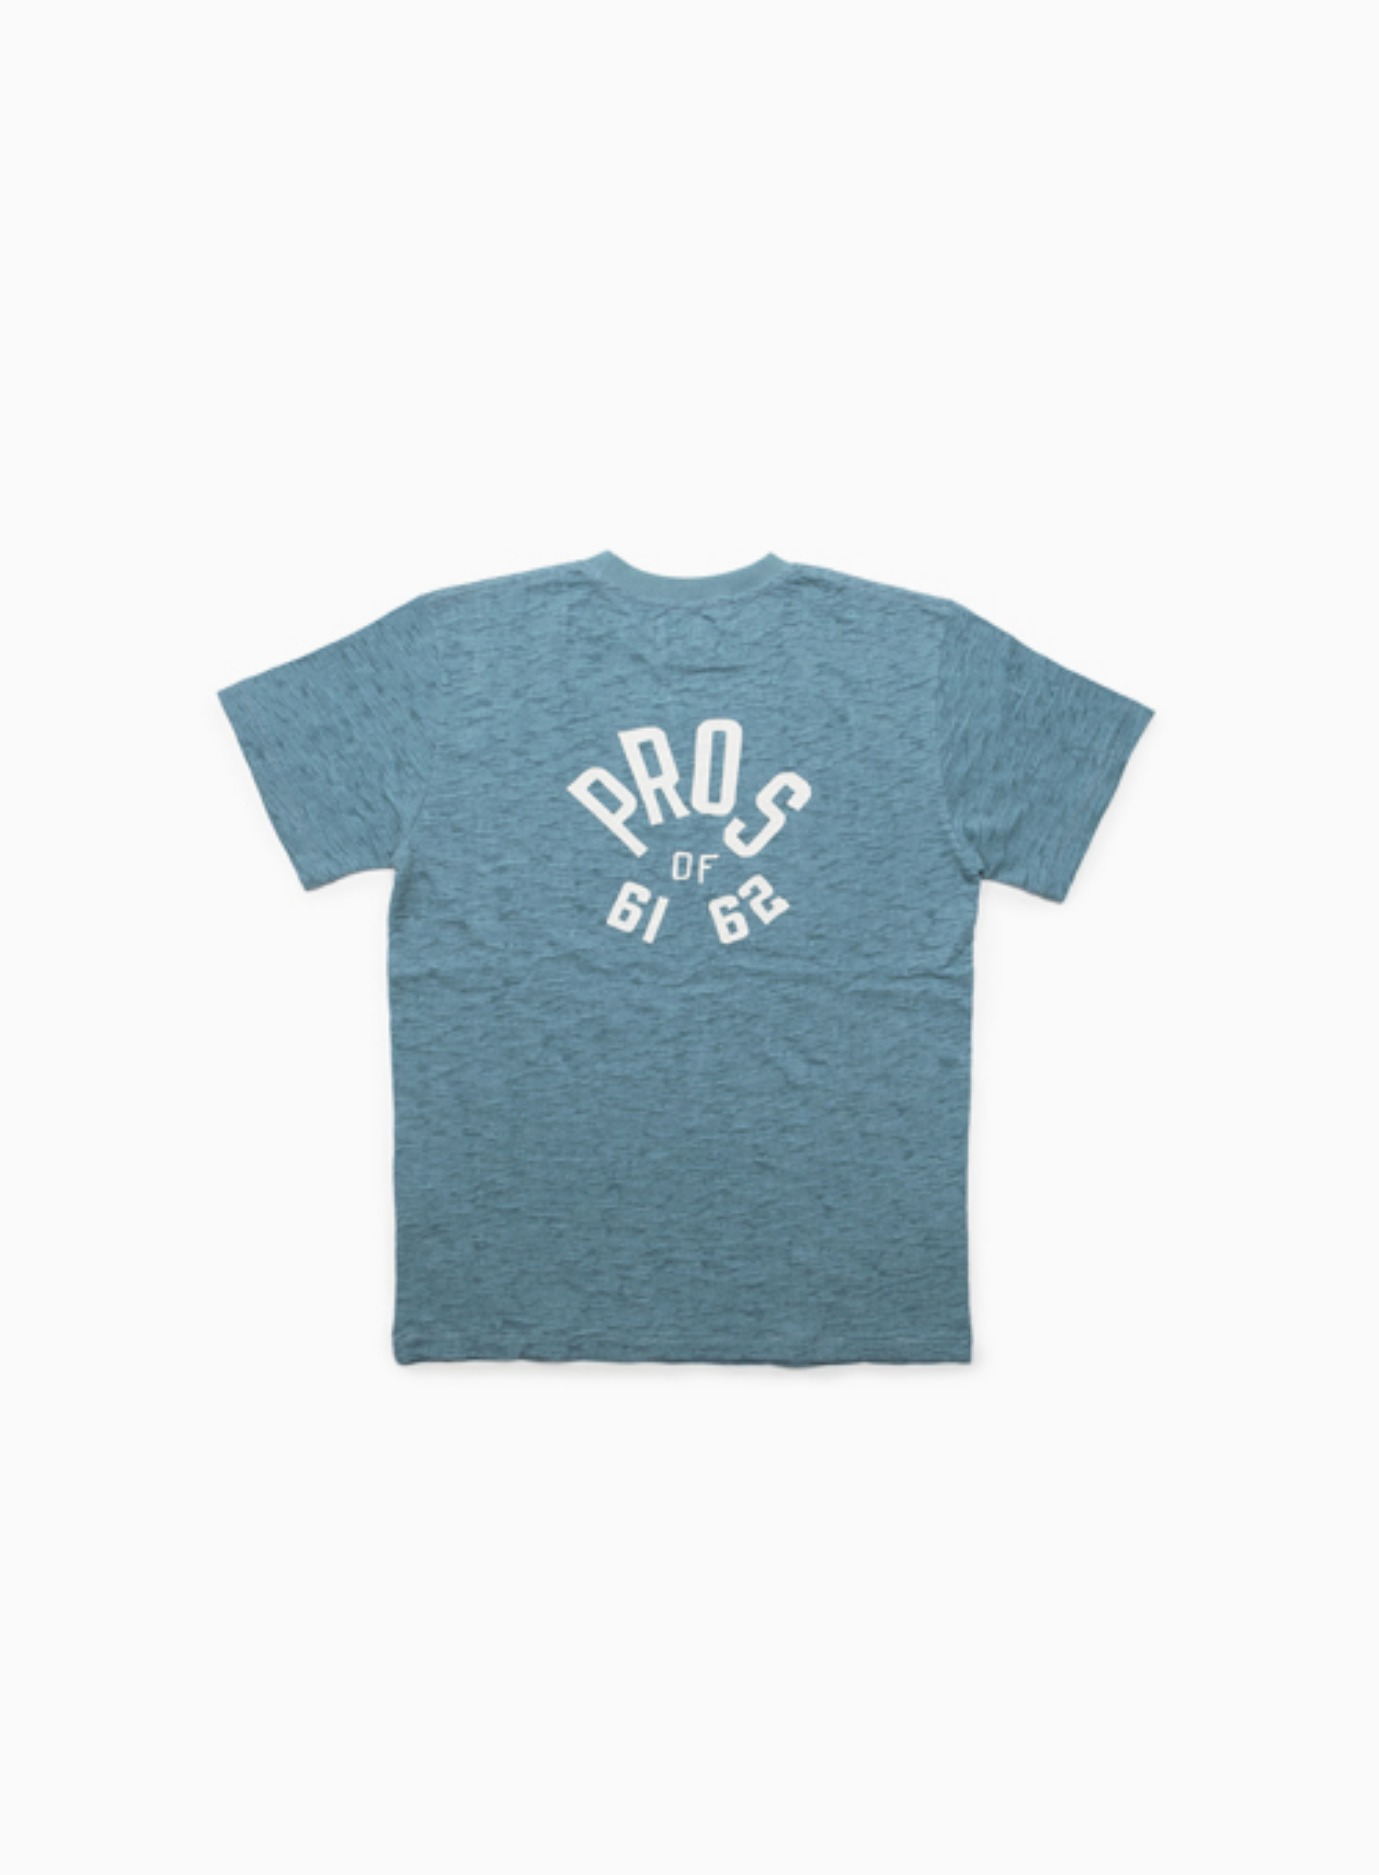 PROS T-SHIRT (BLUE)